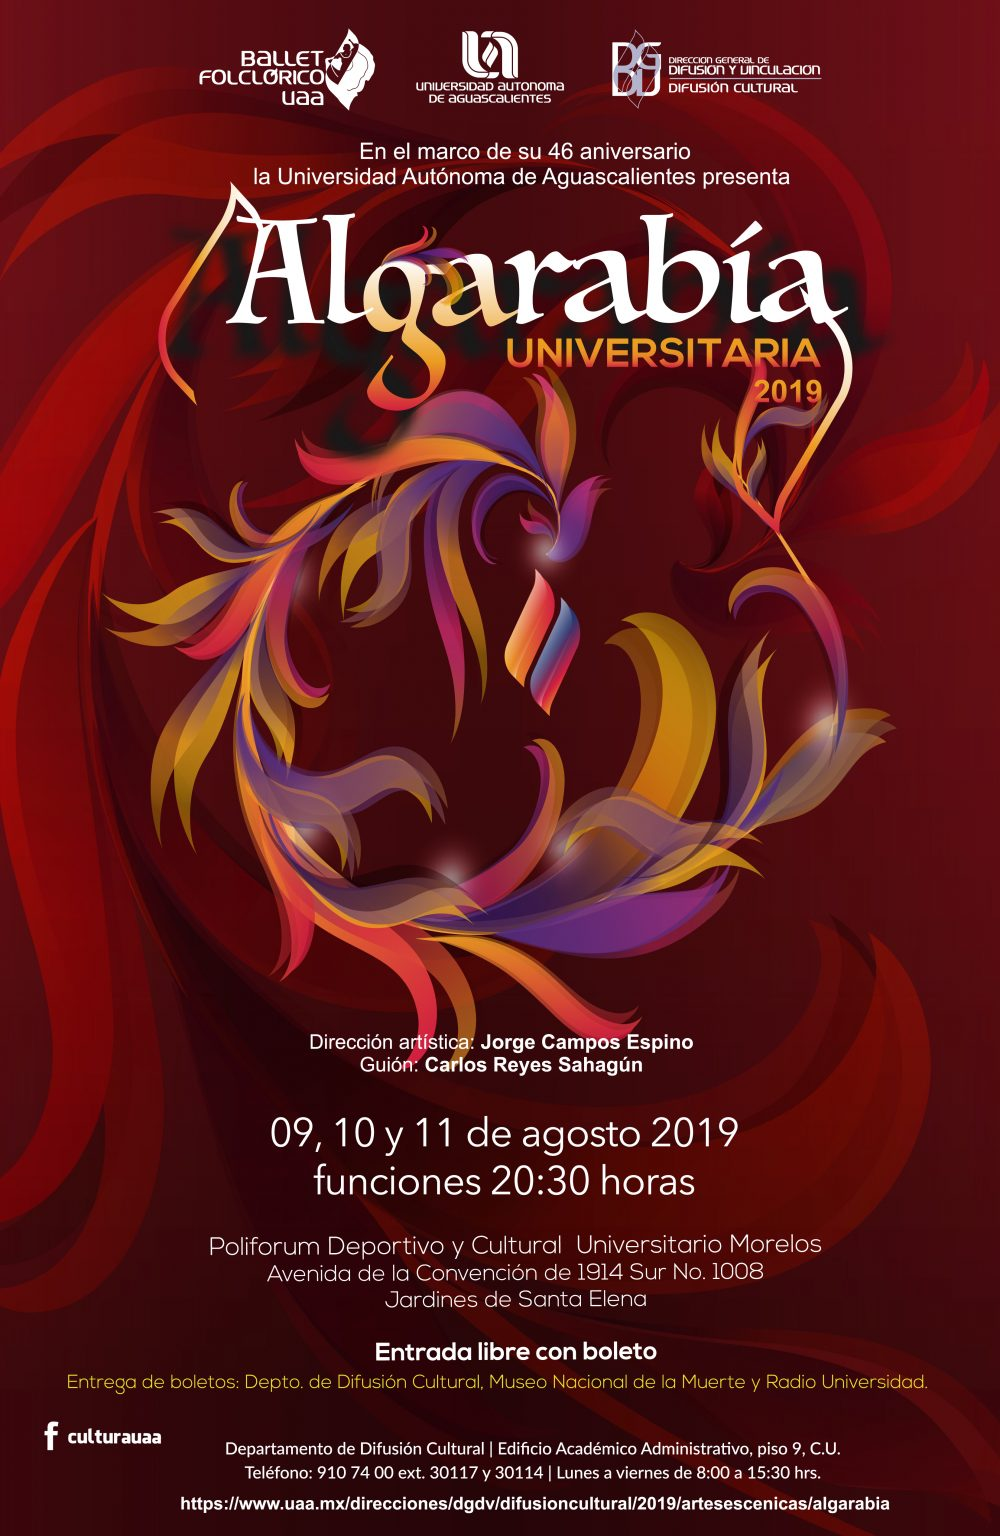 Algarabía Universitaria 2019